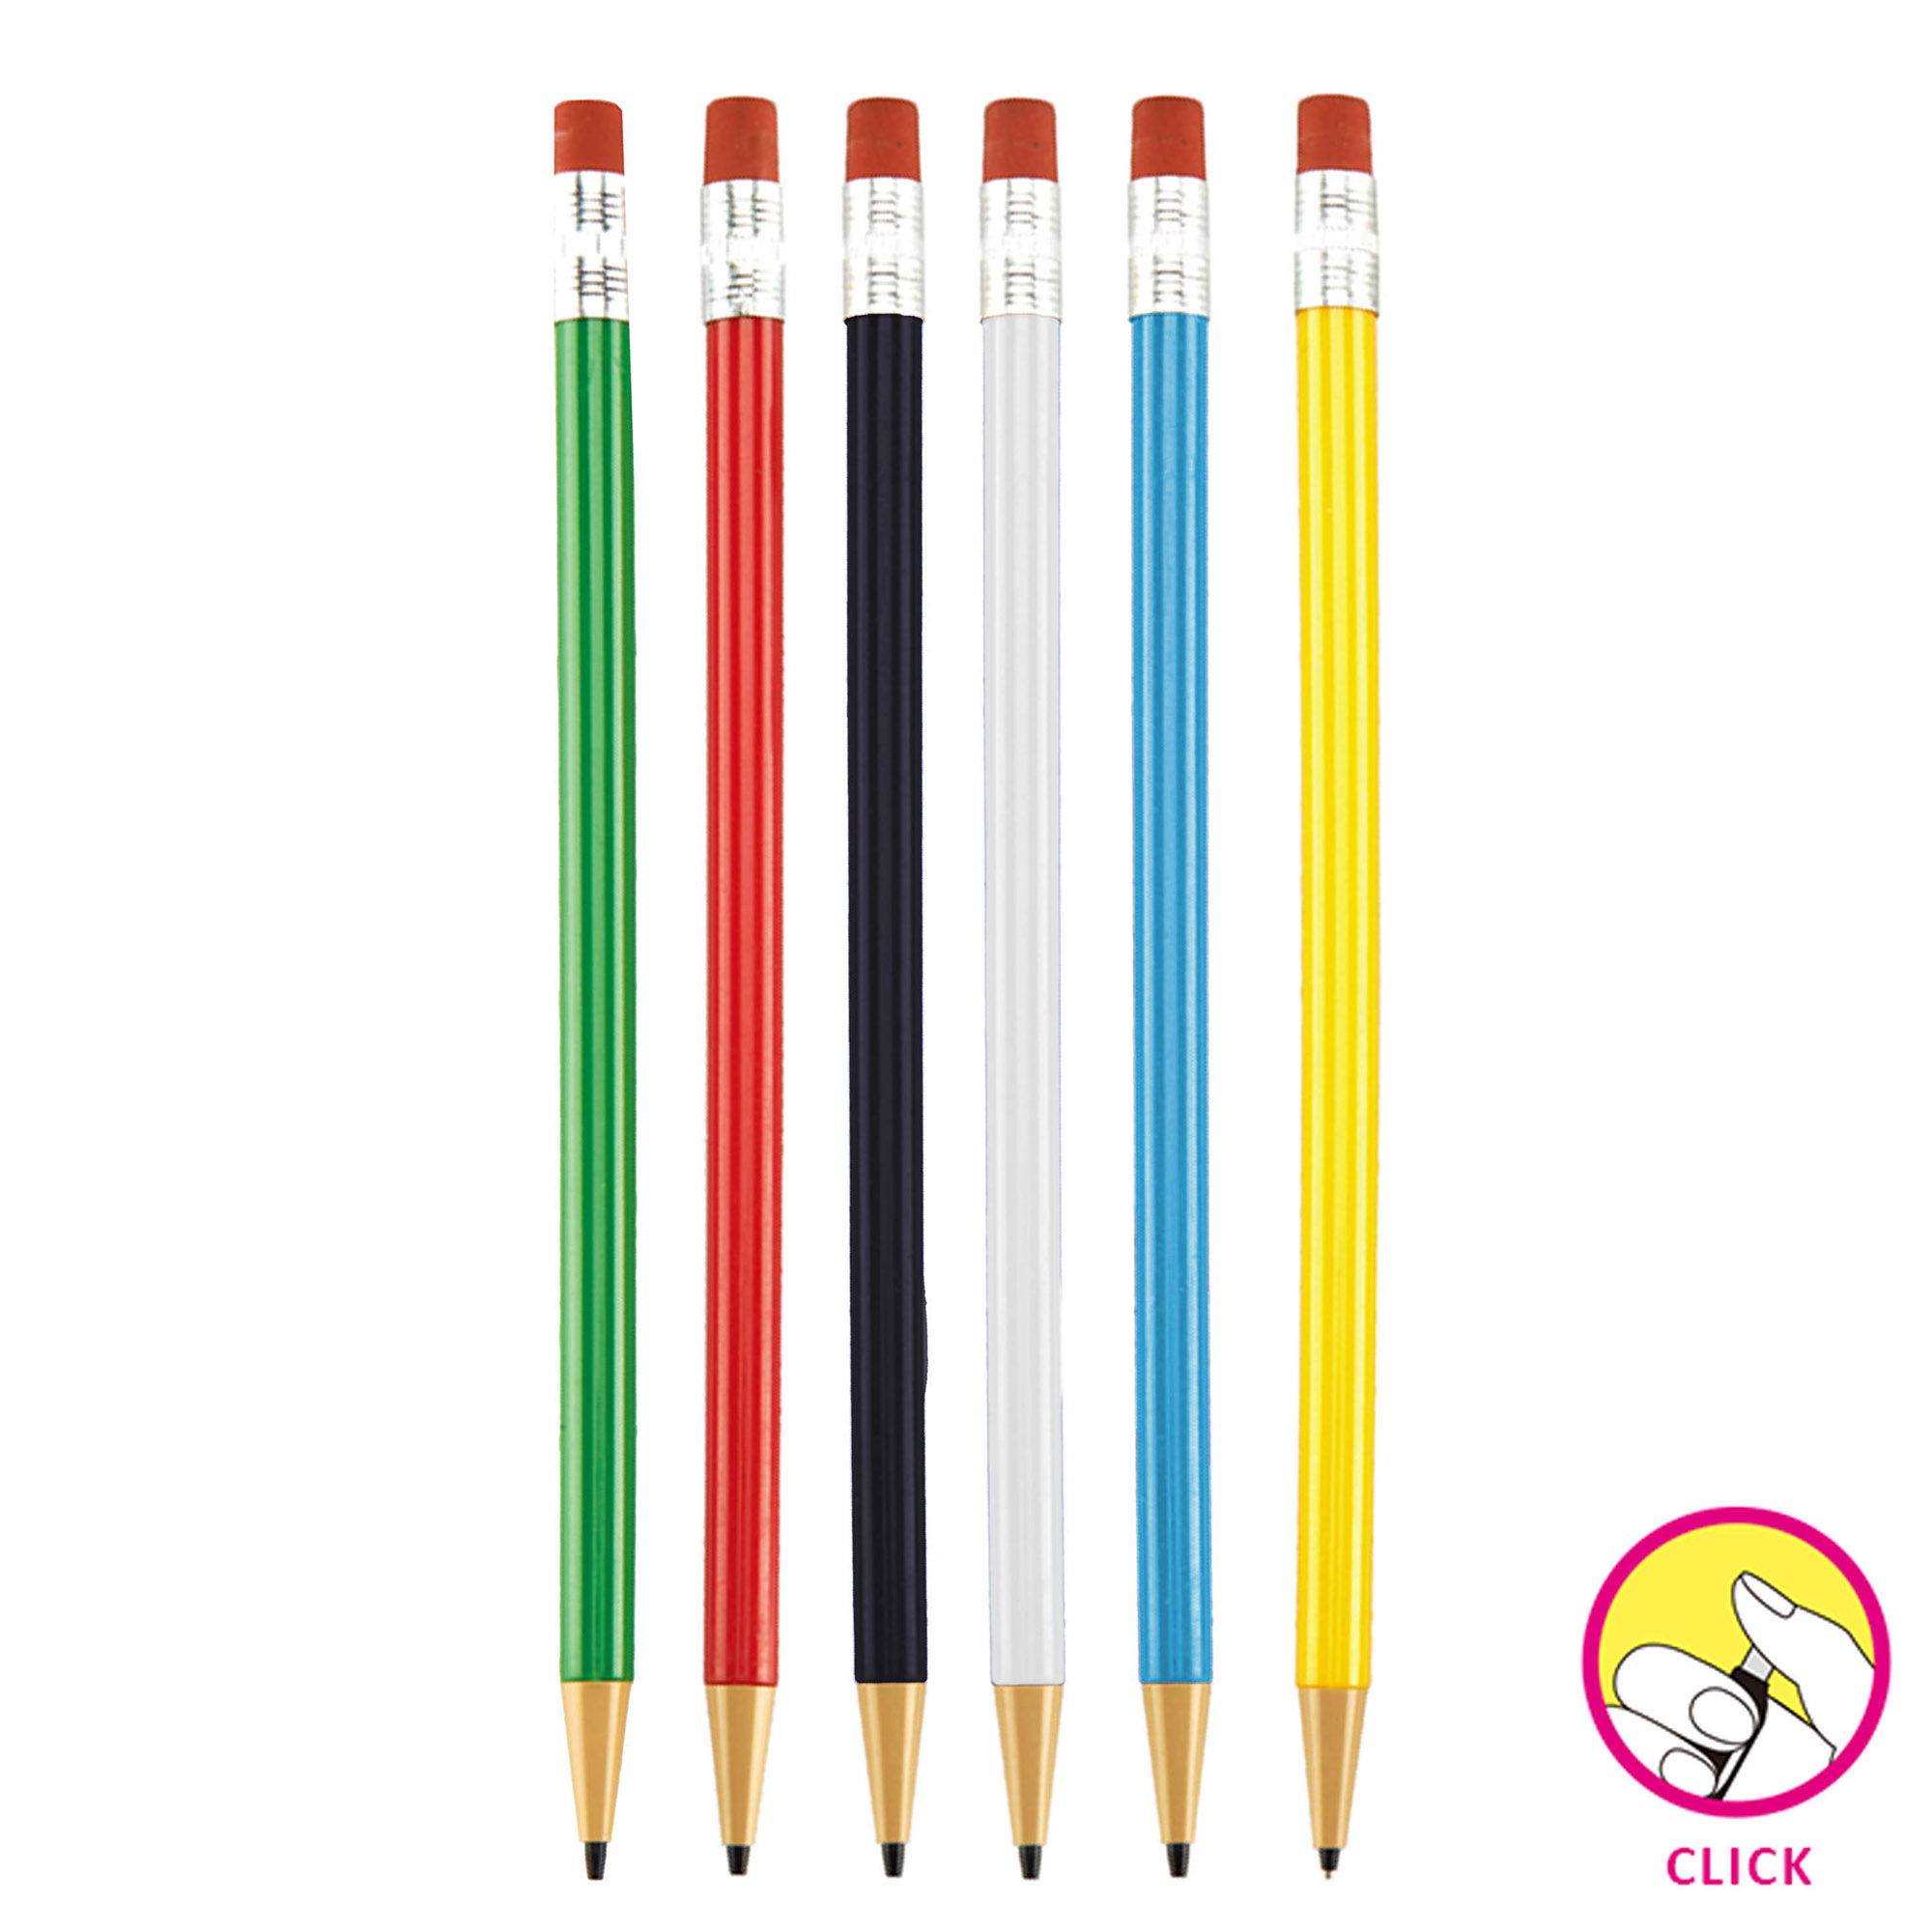 ROUND MECHANICAL PENCIL - 1 Colour Print, From $0.37